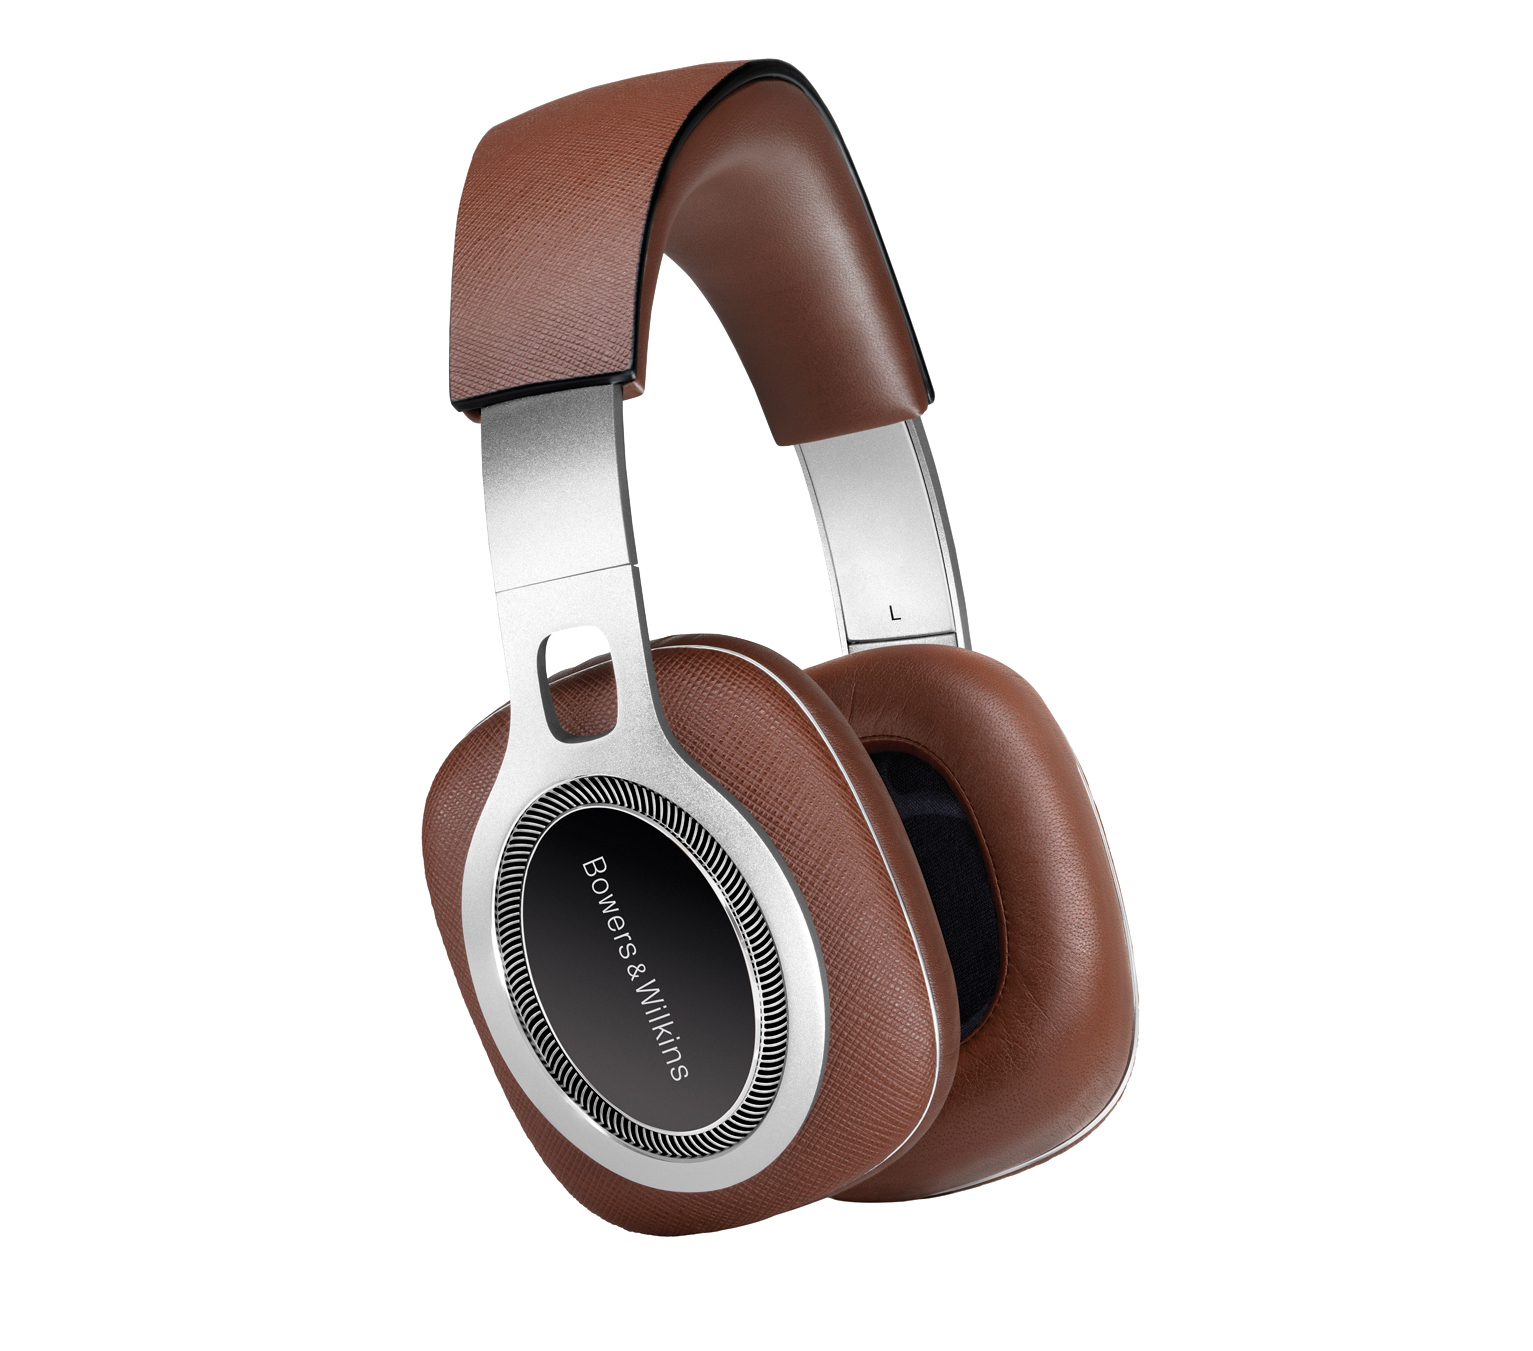 product ferrari headphone cavallino high headphones collection ear store end in echosaudio tan audio